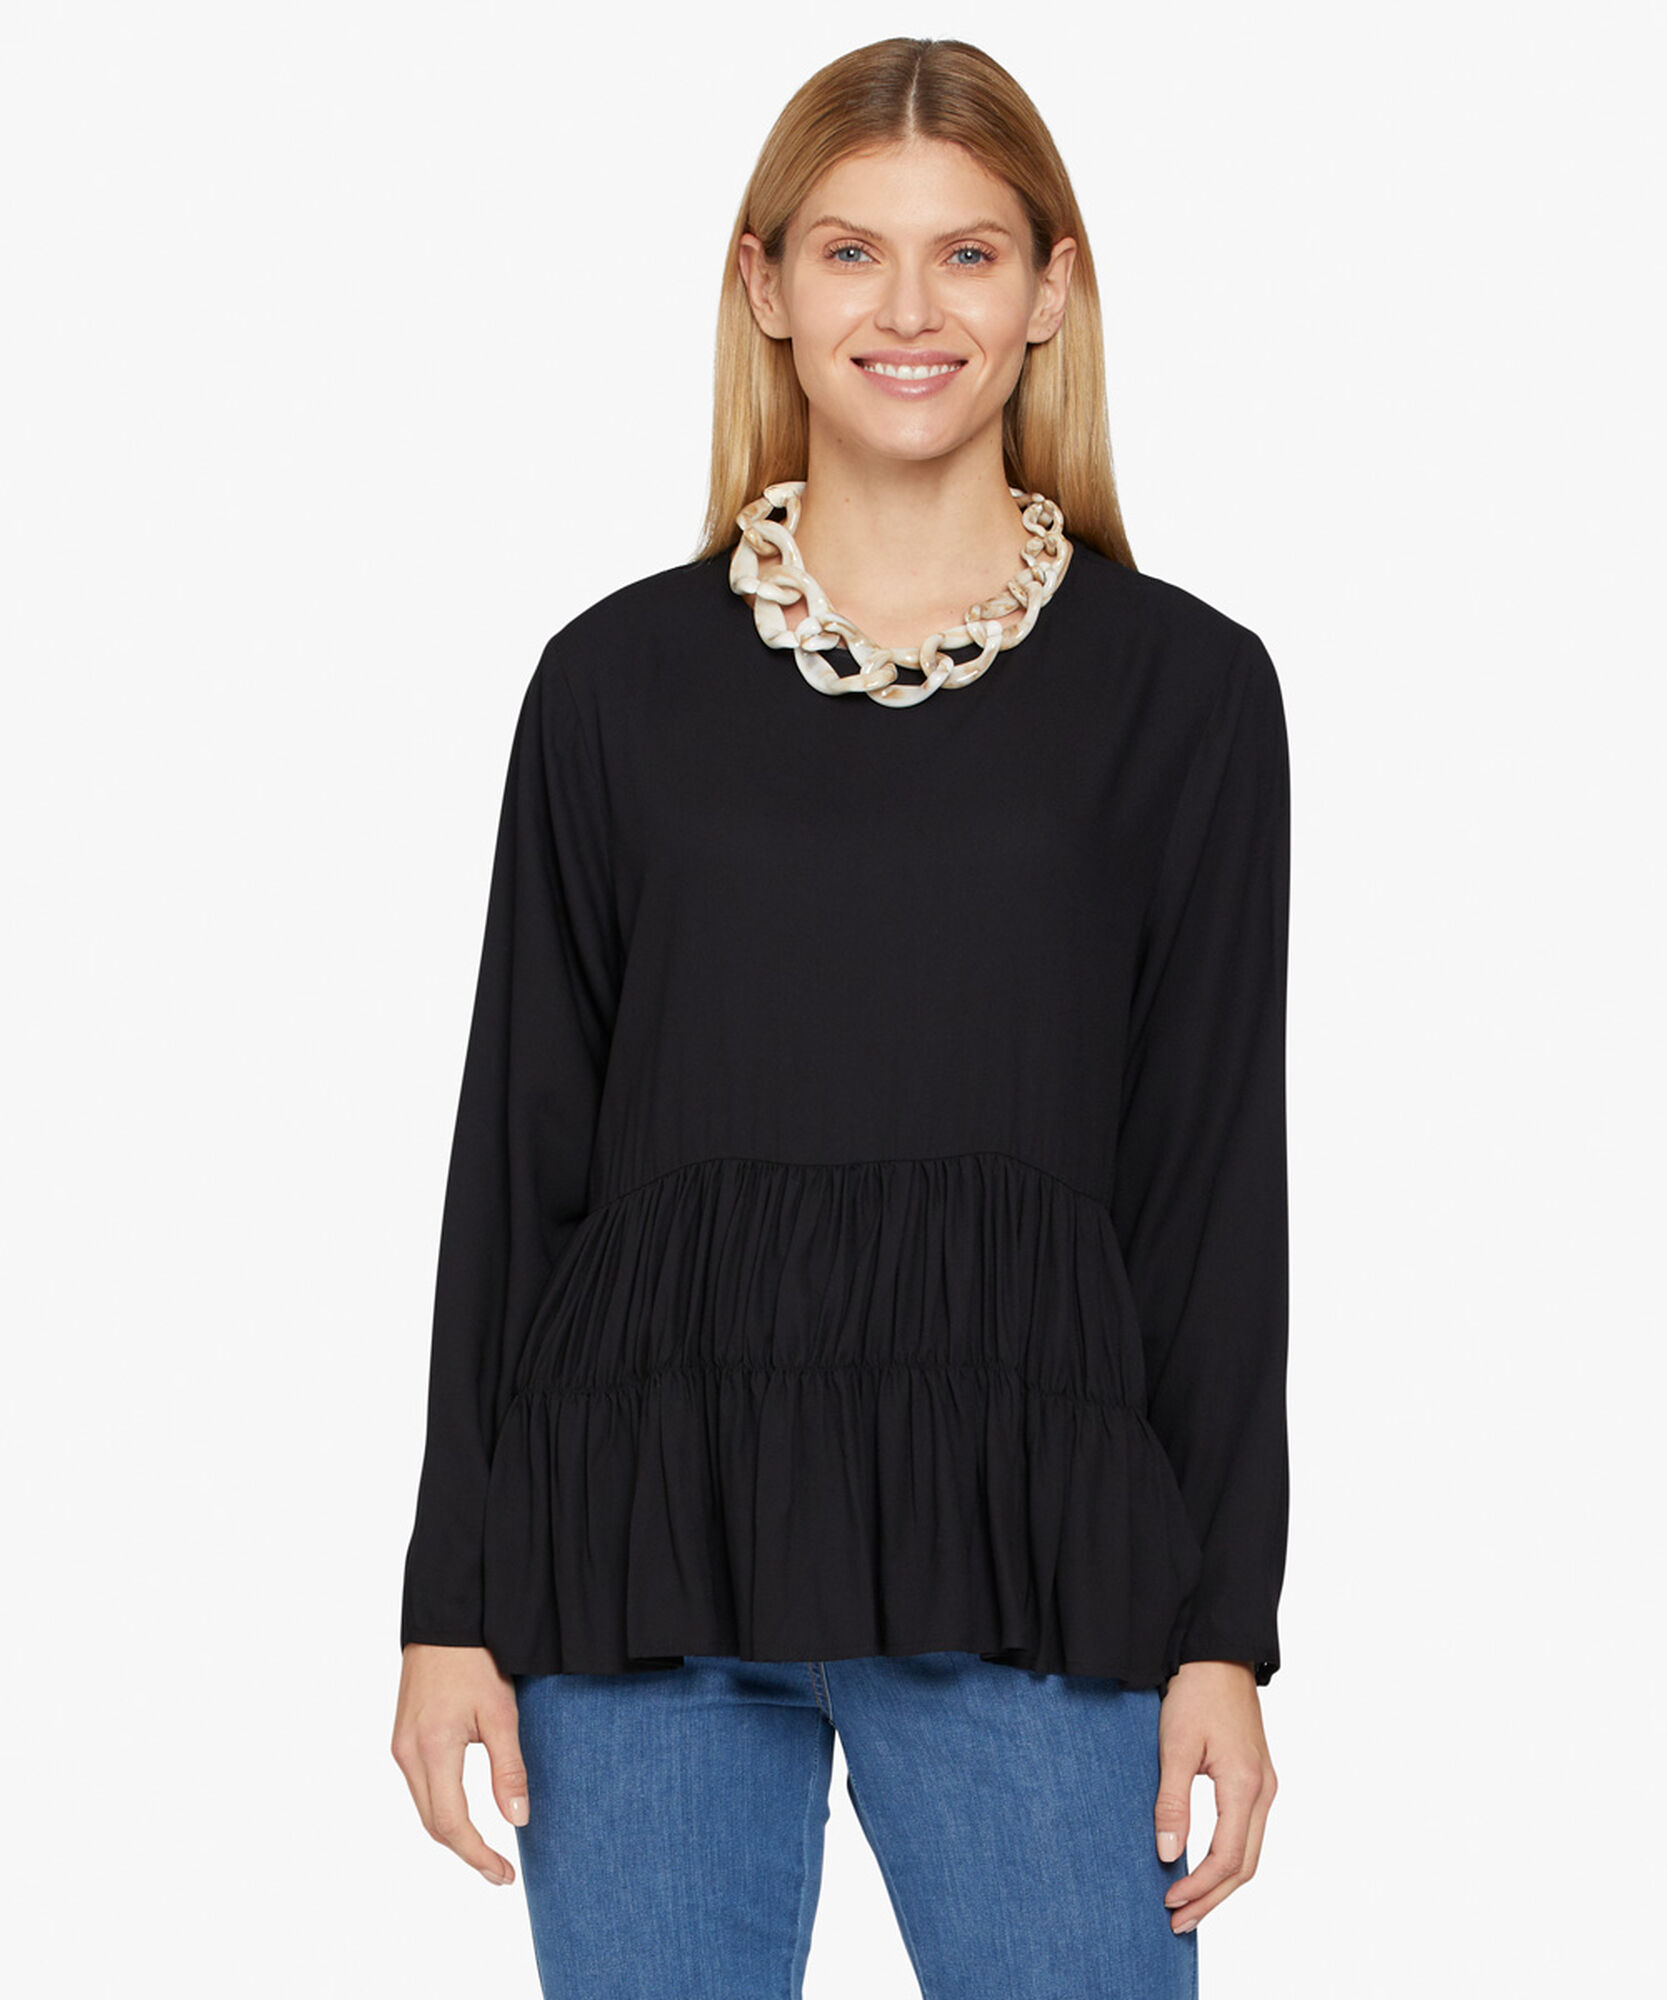 BIA TOP, Black, hi-res